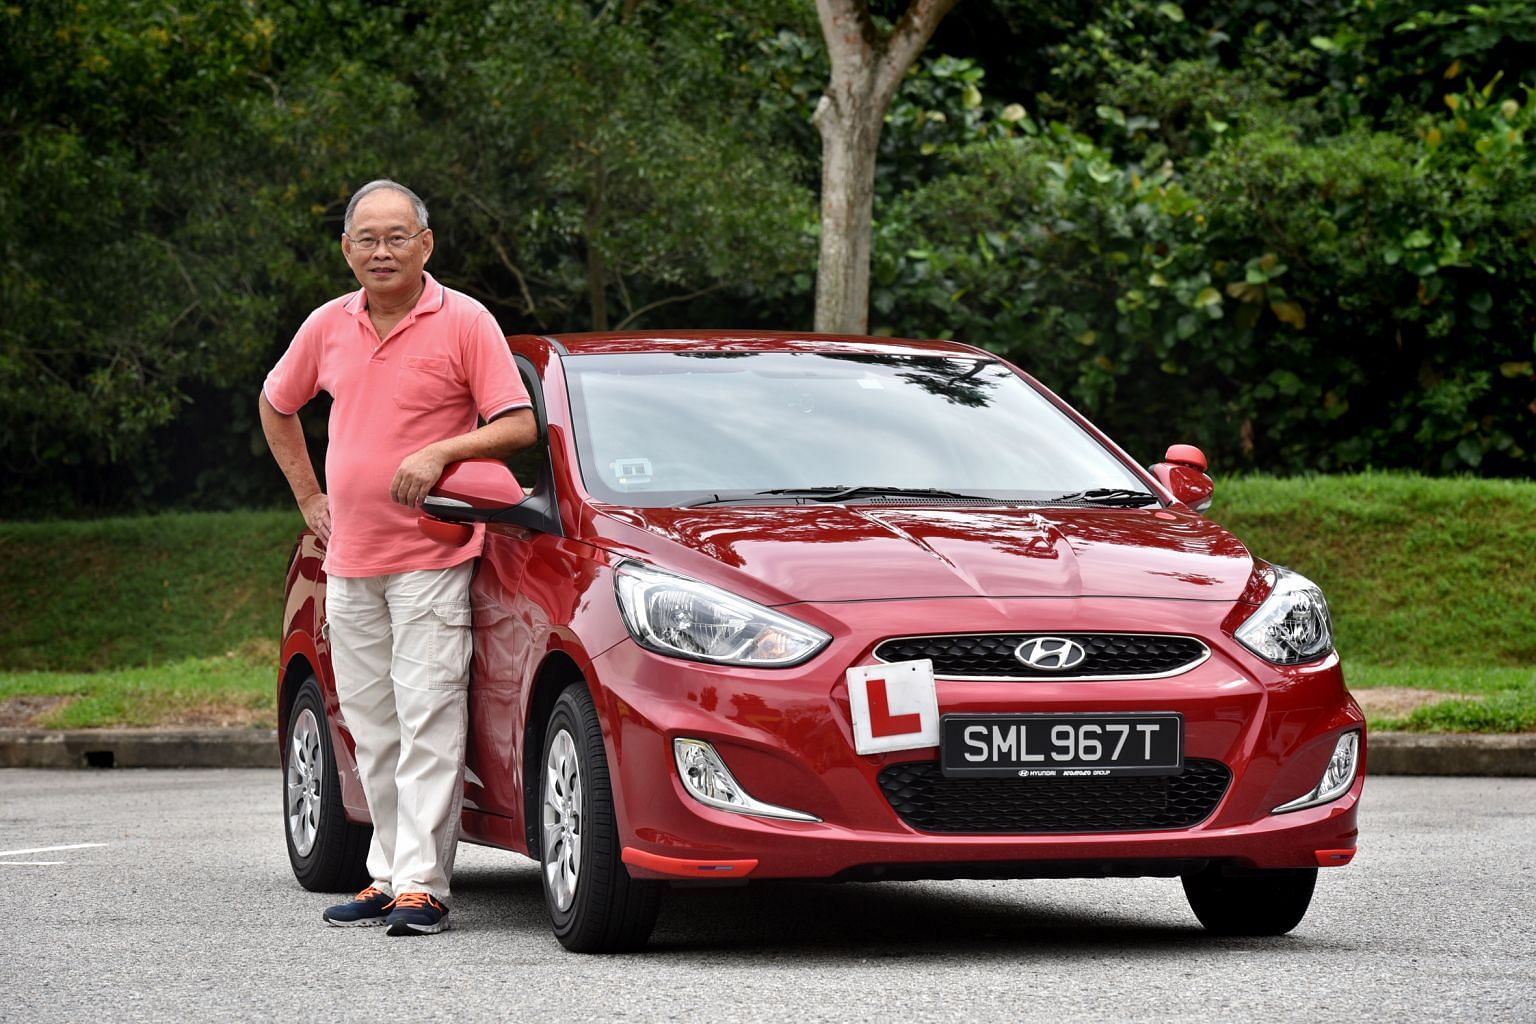 Mr Paul Ong says the Accent's speedometer and tachometer are clearly visible, which is important for student drivers.